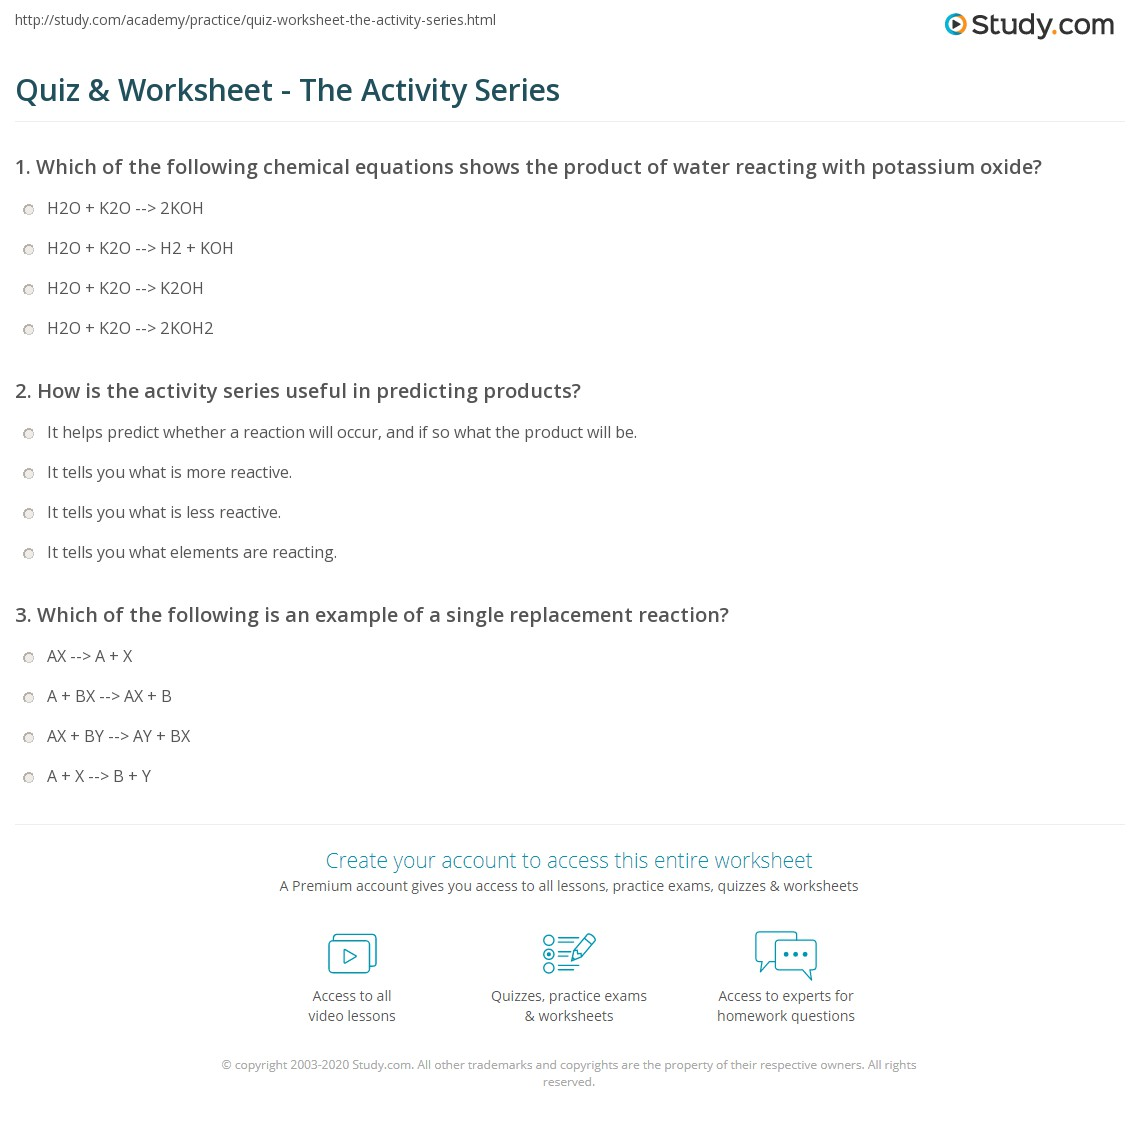 Aldiablosus  Remarkable Quiz Amp Worksheet  The Activity Series  Studycom With Exciting Print The Activity Series Predicting Products Of Single Displacement Reactions Worksheet With Cute Letter S Worksheets For Preschoolers Also Soft G Worksheets In Addition Area Of A Rectangle Worksheets And Fractions And Decimals On A Number Line Worksheets As Well As Holiday Worksheet Additionally Ohio Child Support Computation Worksheet From Studycom With Aldiablosus  Exciting Quiz Amp Worksheet  The Activity Series  Studycom With Cute Print The Activity Series Predicting Products Of Single Displacement Reactions Worksheet And Remarkable Letter S Worksheets For Preschoolers Also Soft G Worksheets In Addition Area Of A Rectangle Worksheets From Studycom